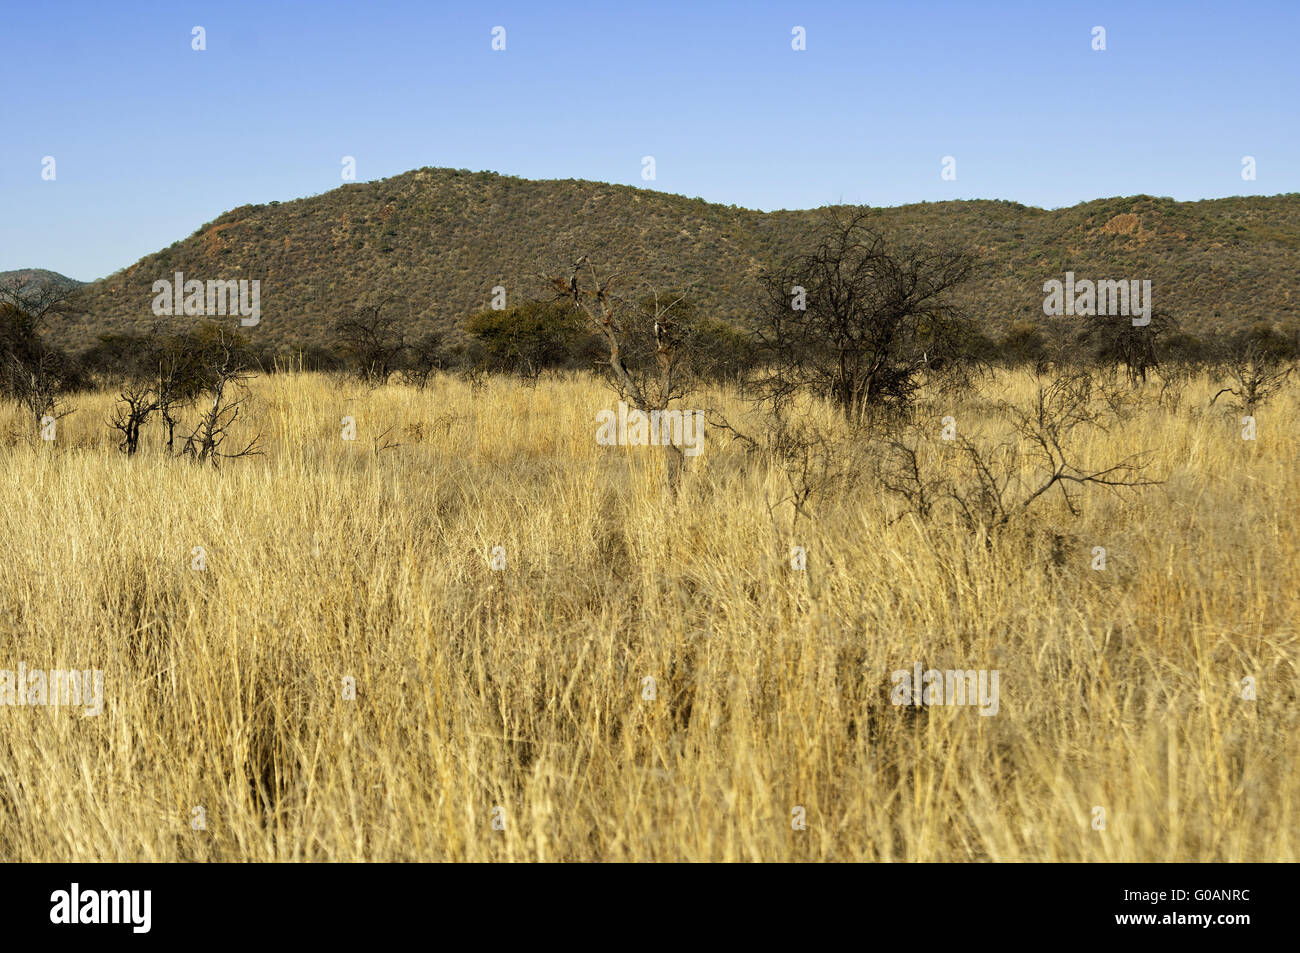 African savanna landscape, South Africa - Stock Image